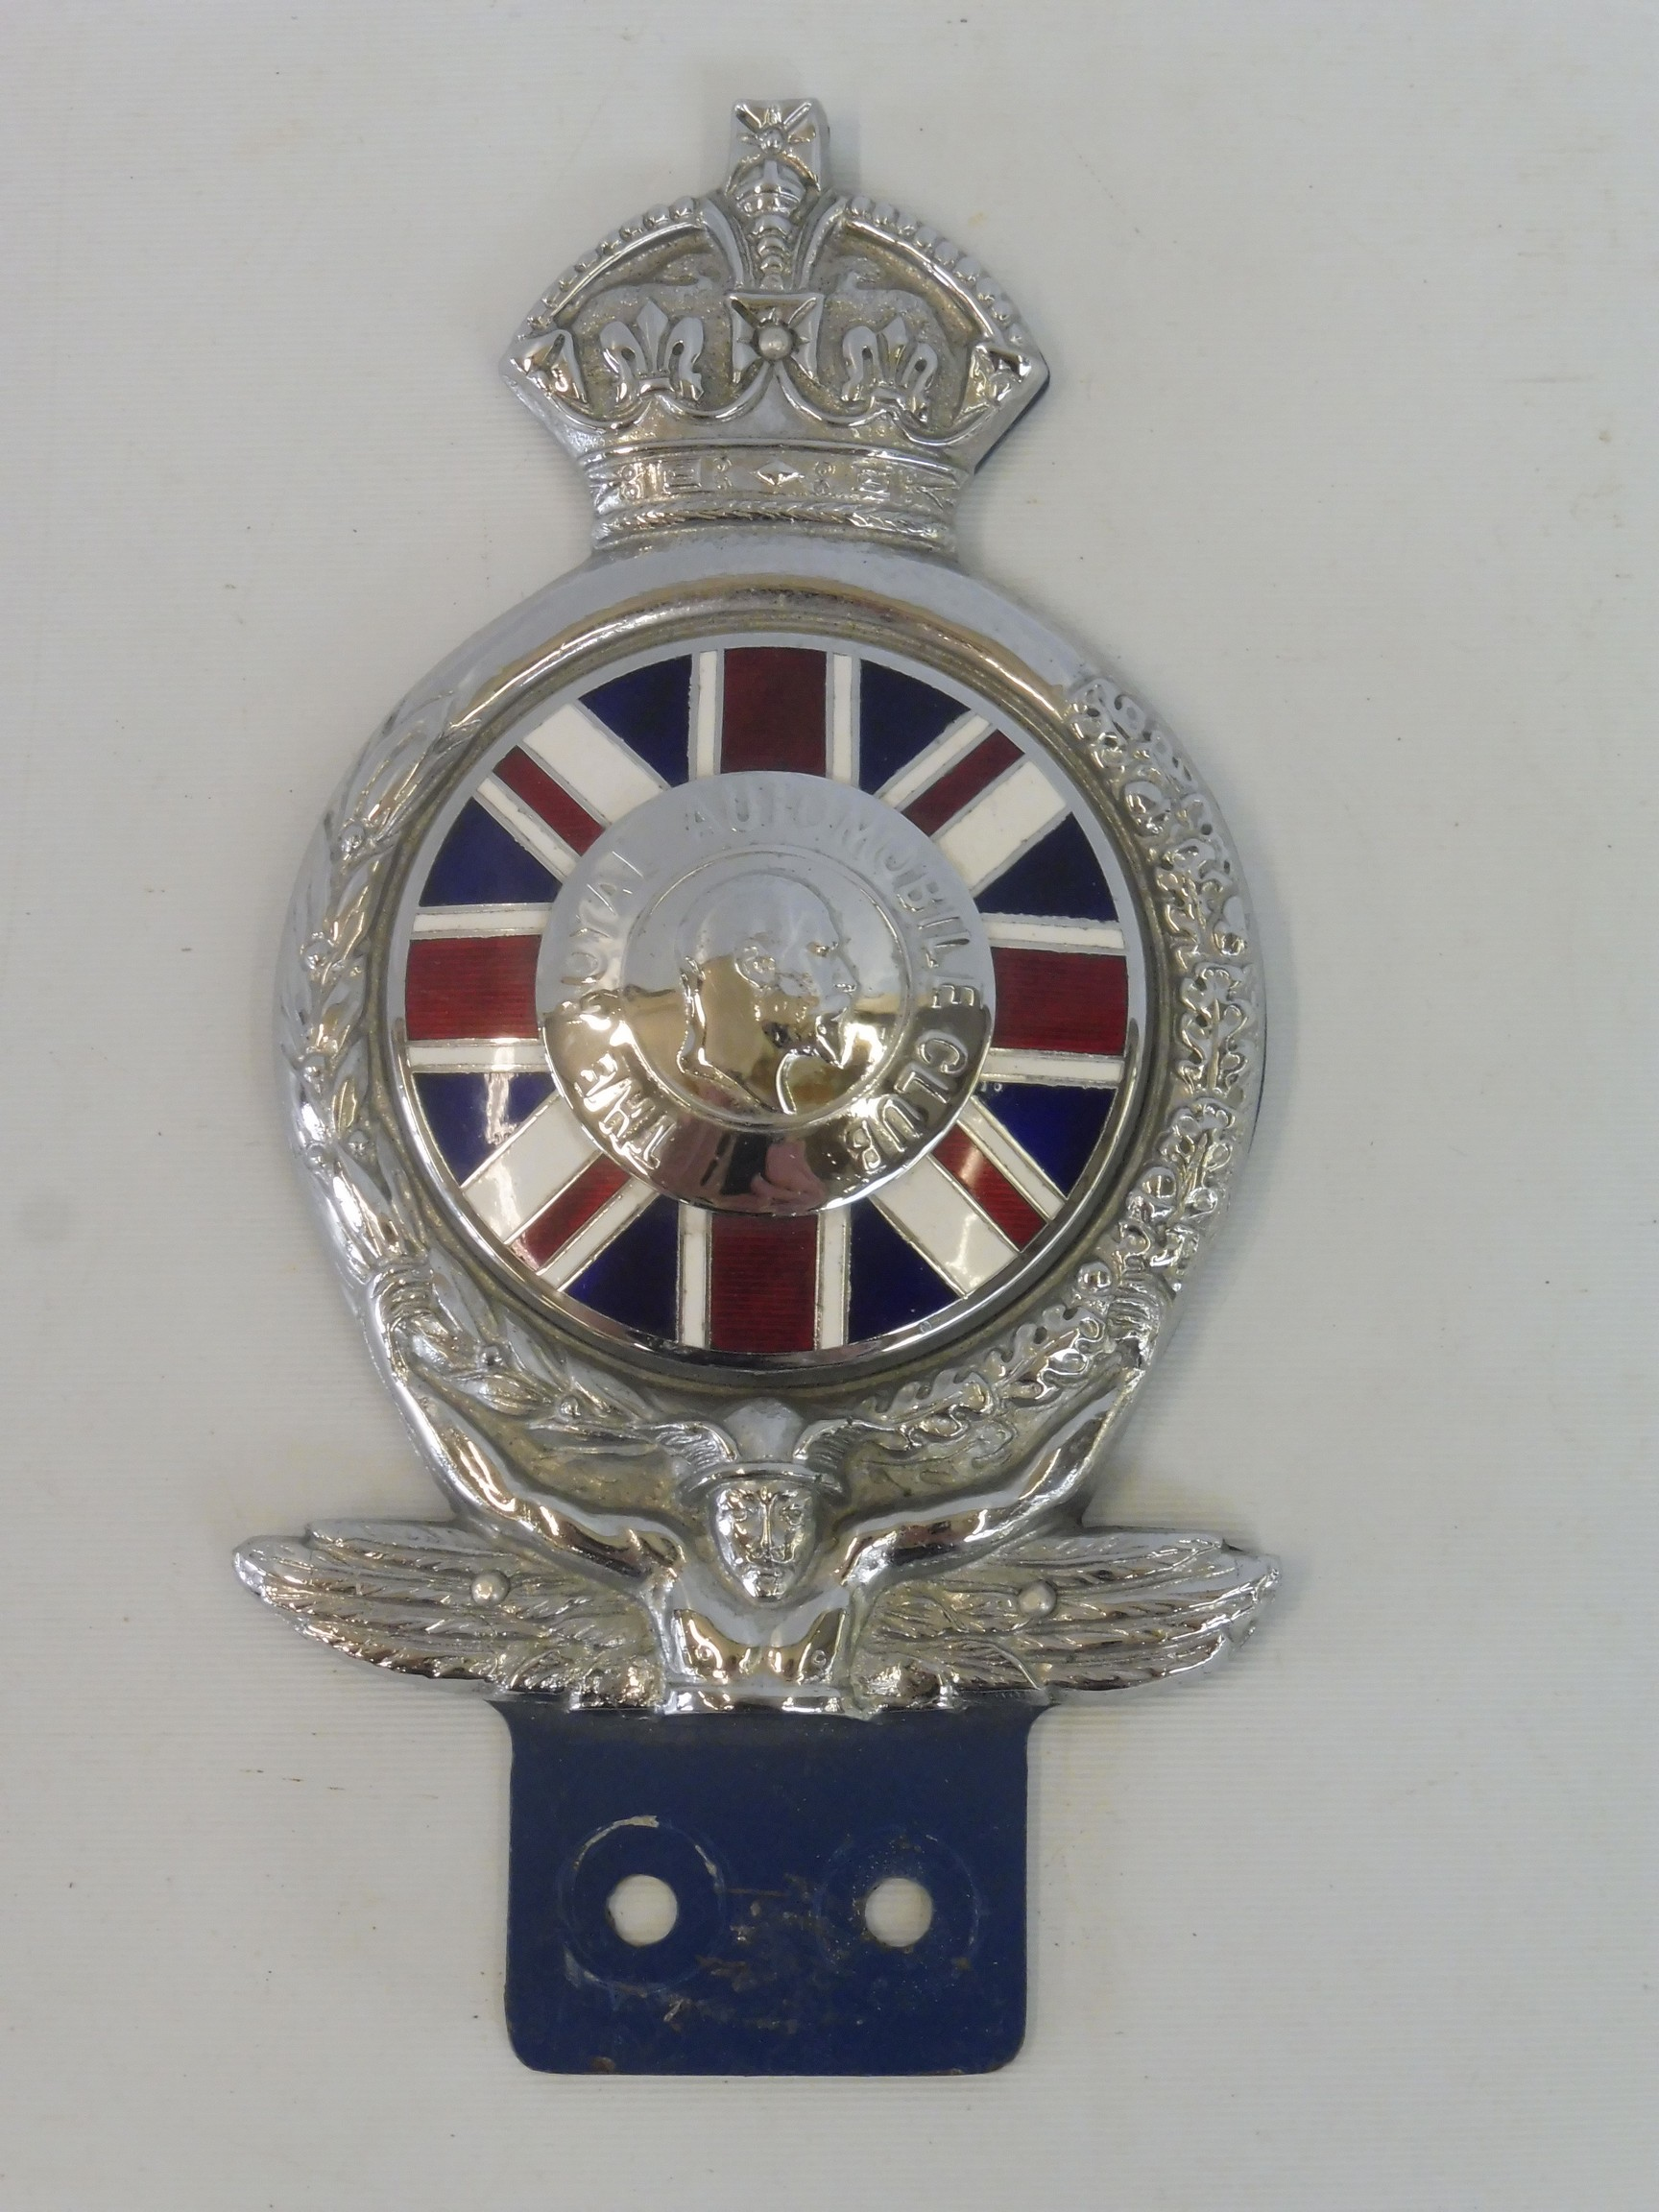 A rare Royal Automobile Club 1953 prototype badge, illustrated on page 87 of 'British Car Badges'.